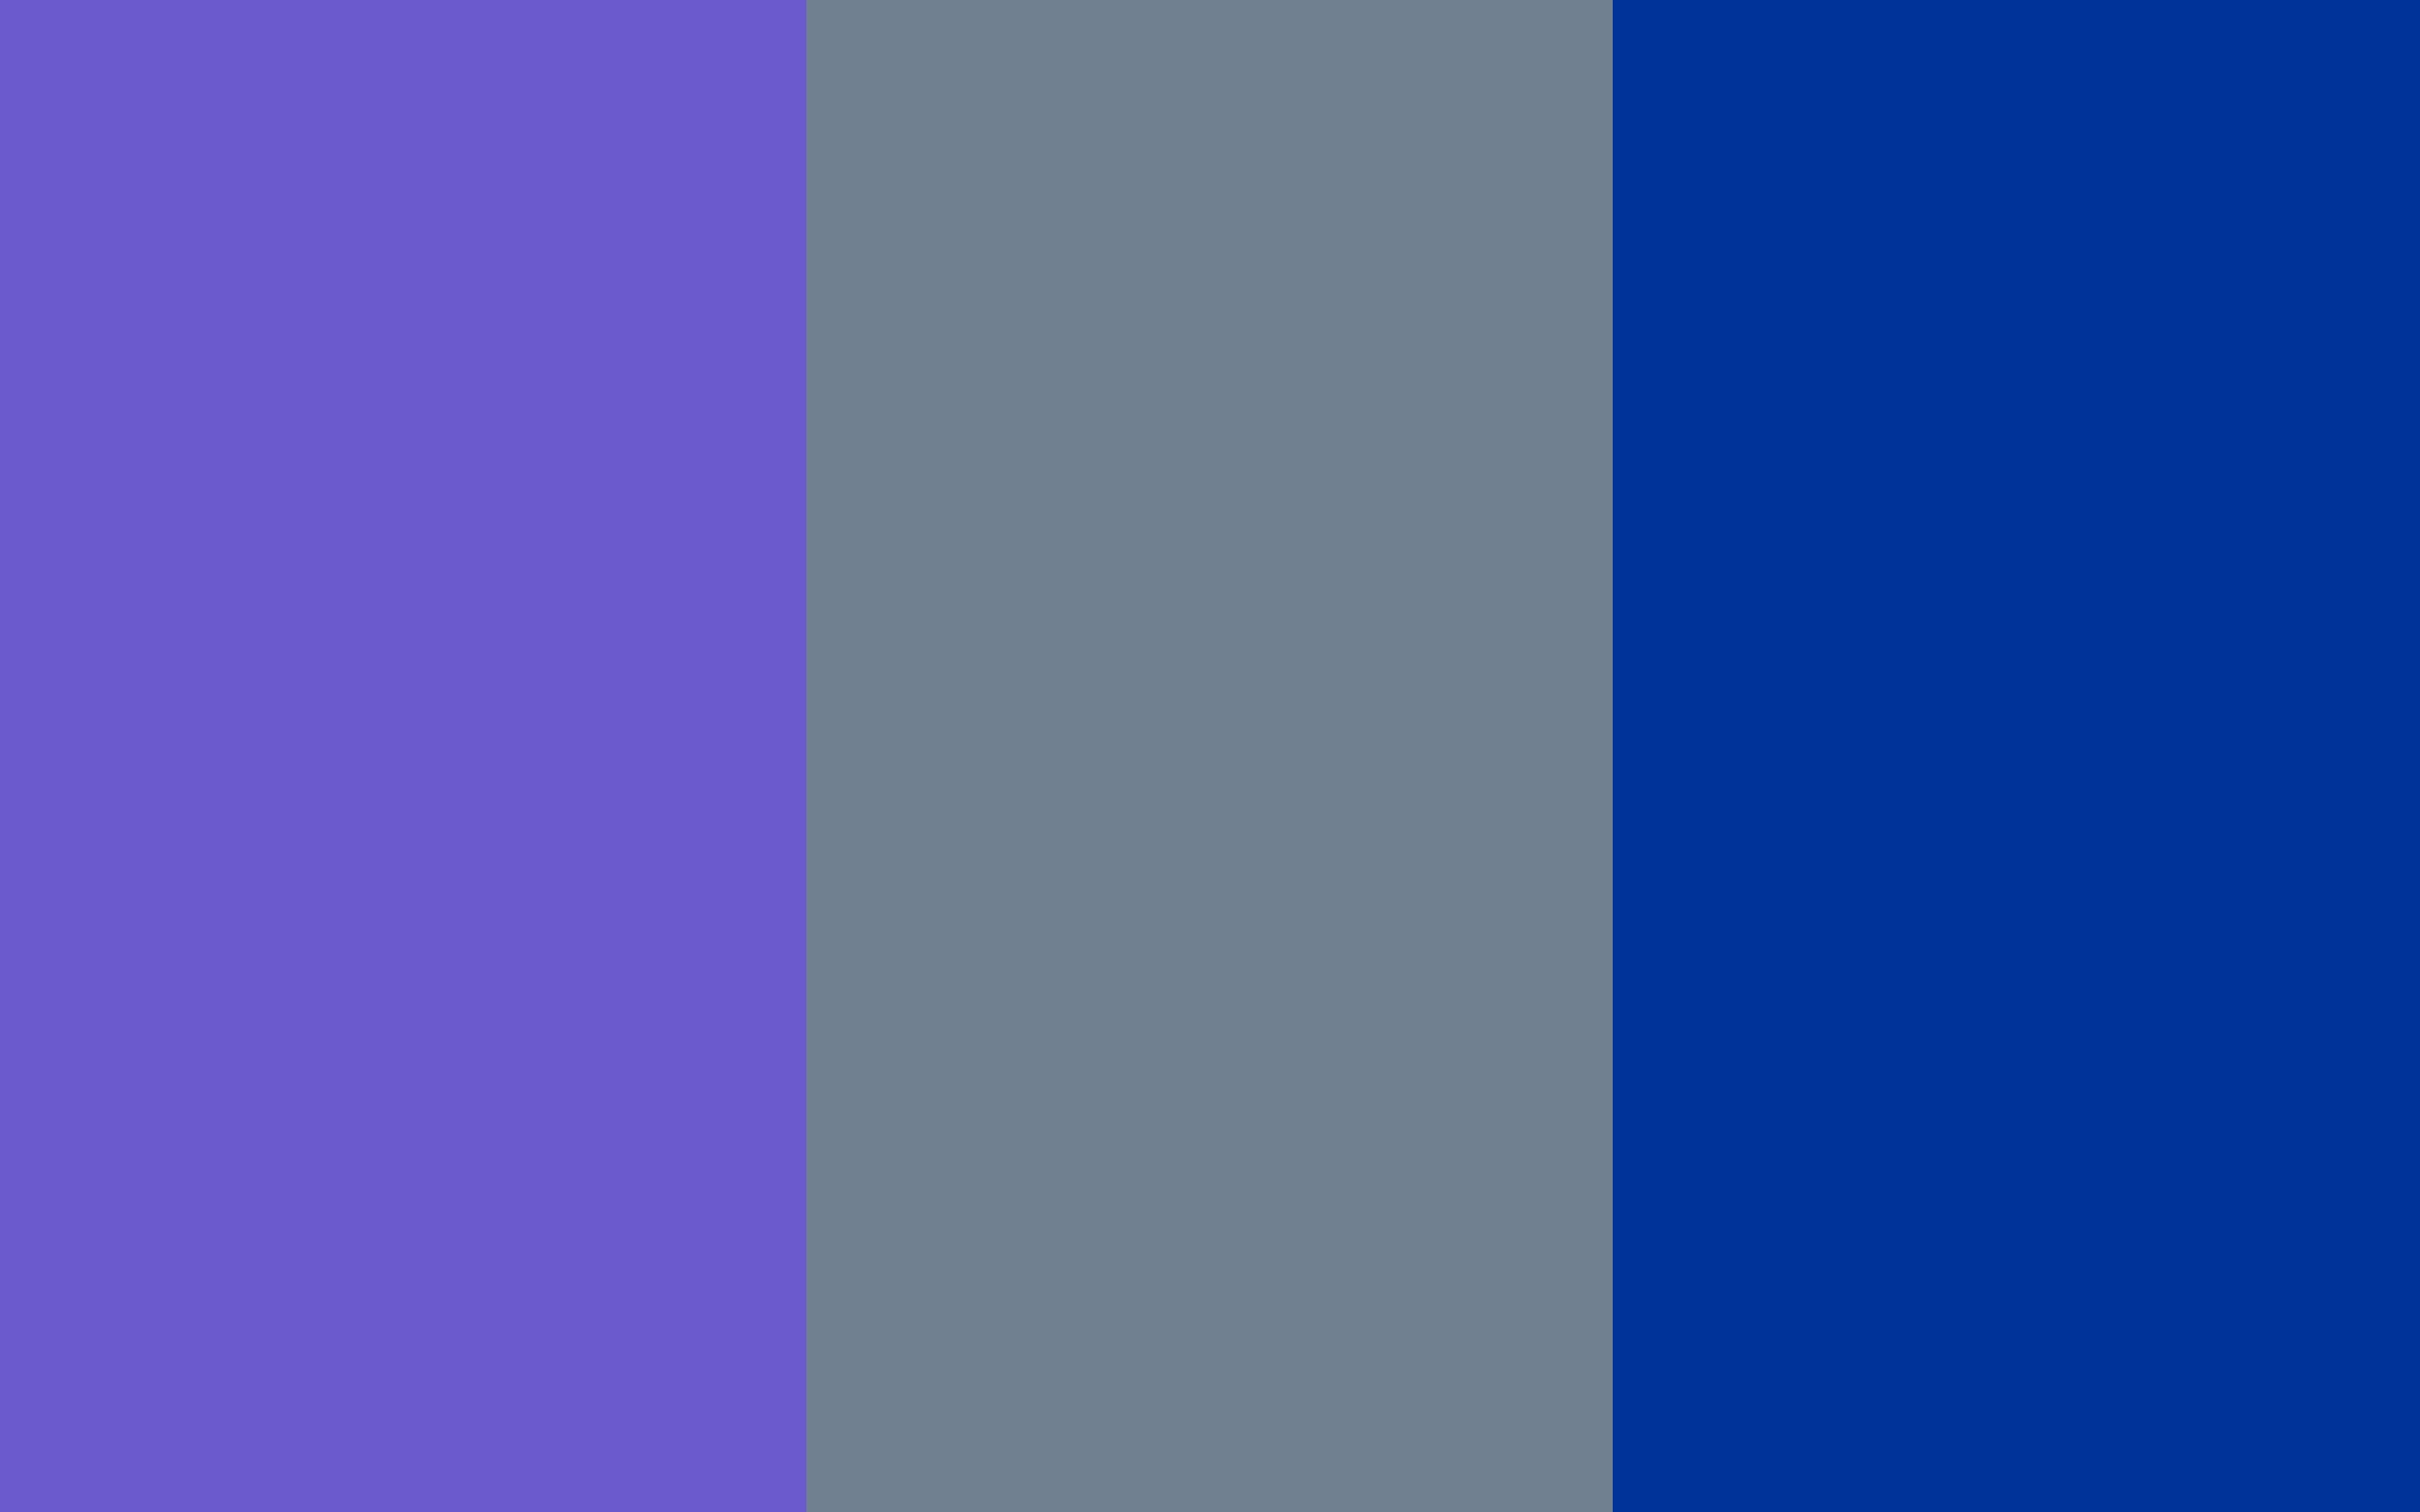 color ceil background blue periwinkle ceilings solid